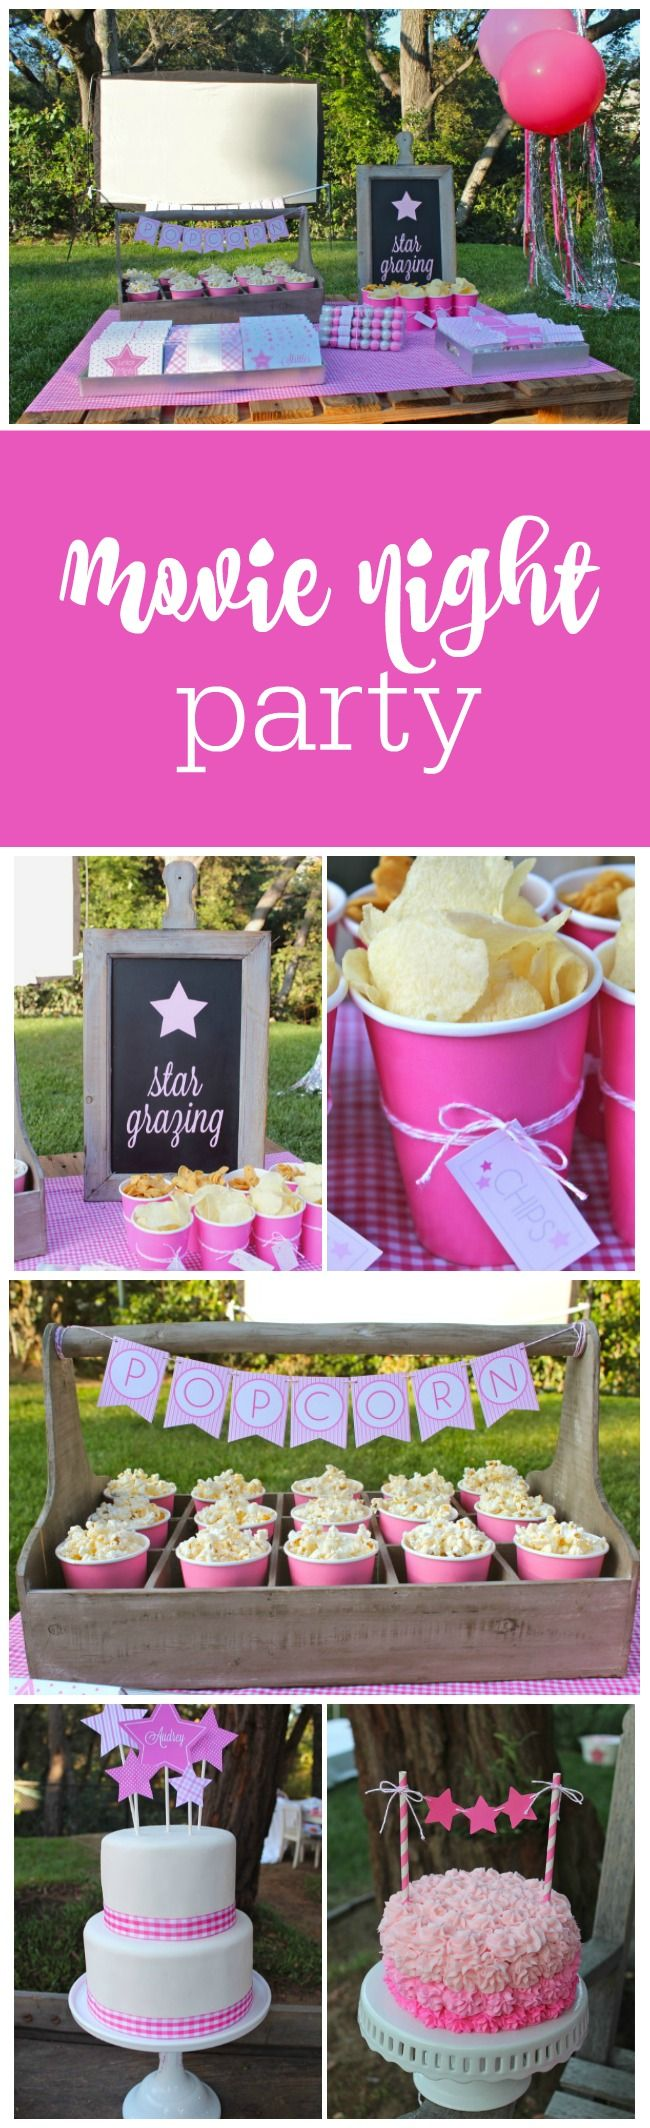 """Twinkle lights. Jenny Raulli of Bloom Designs had me at the twinkle lights. Jenny styled this """"under the stars"""" movie party for her daughter Audrey's 11th birthday. And of course, as a printables designer, Jenny created all the printables for the party. (And the party accessories all came from her shop.) Dining Table Jenny had … … Continue reading →"""